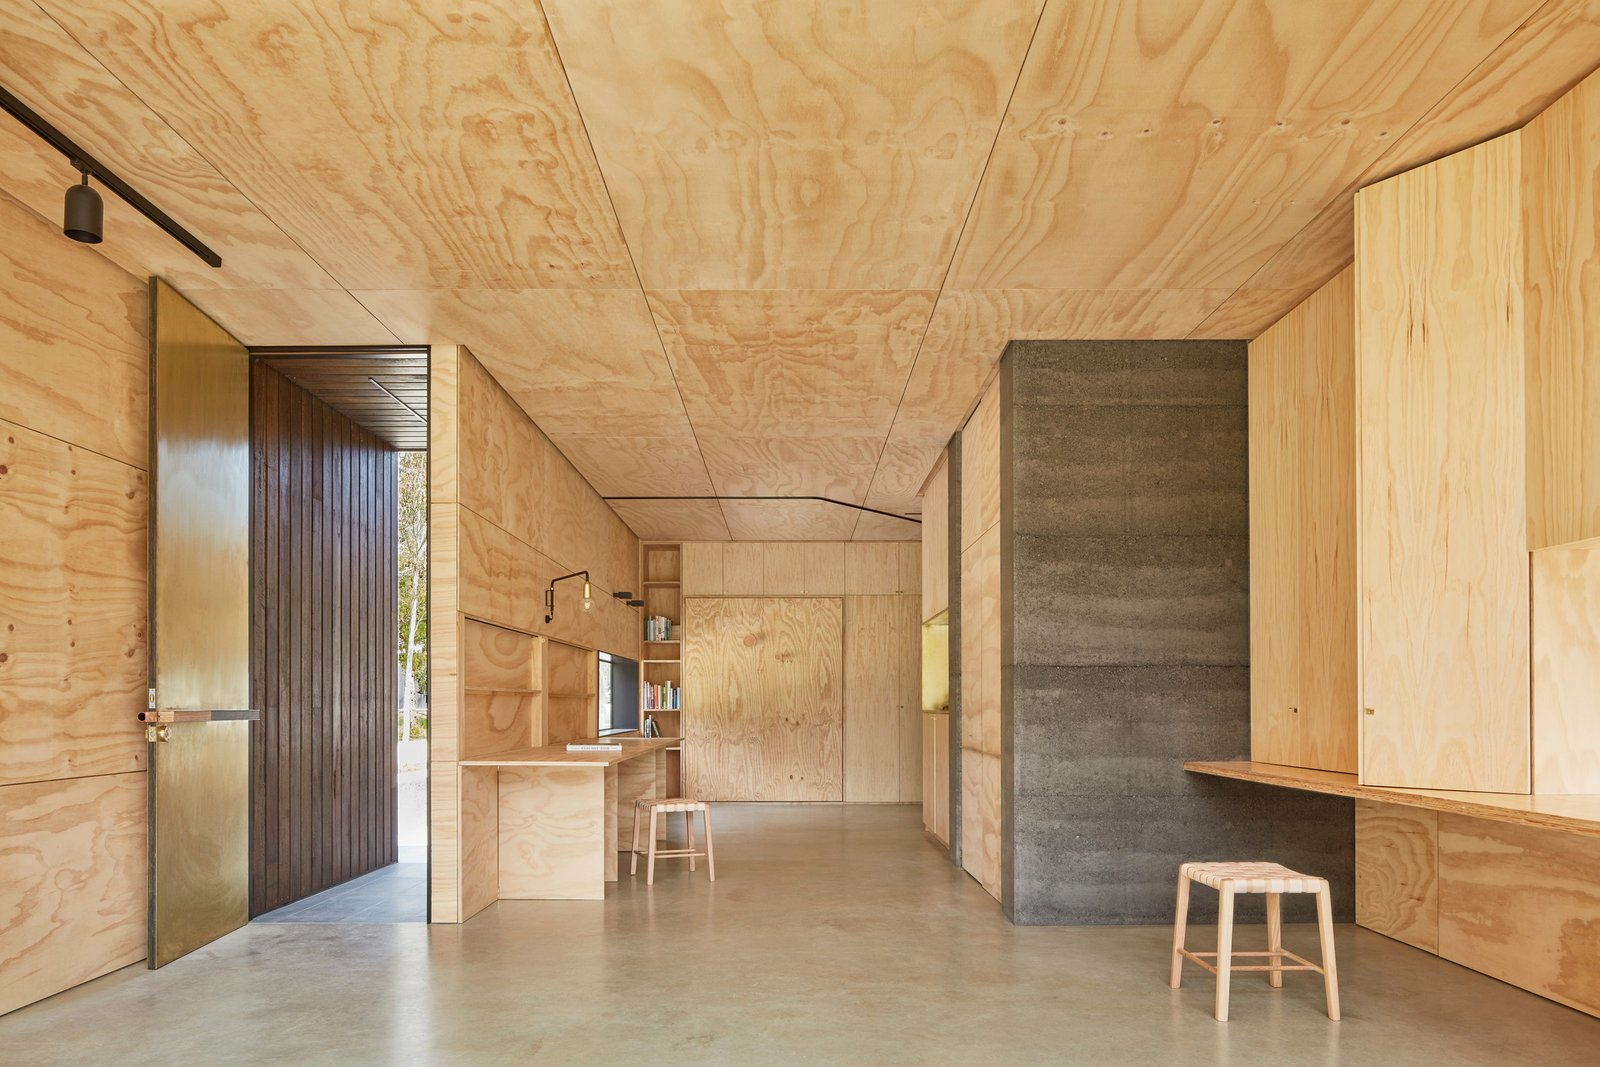 Photo 8 of 9 in Balnarring Retreat by Branch Studio Architects